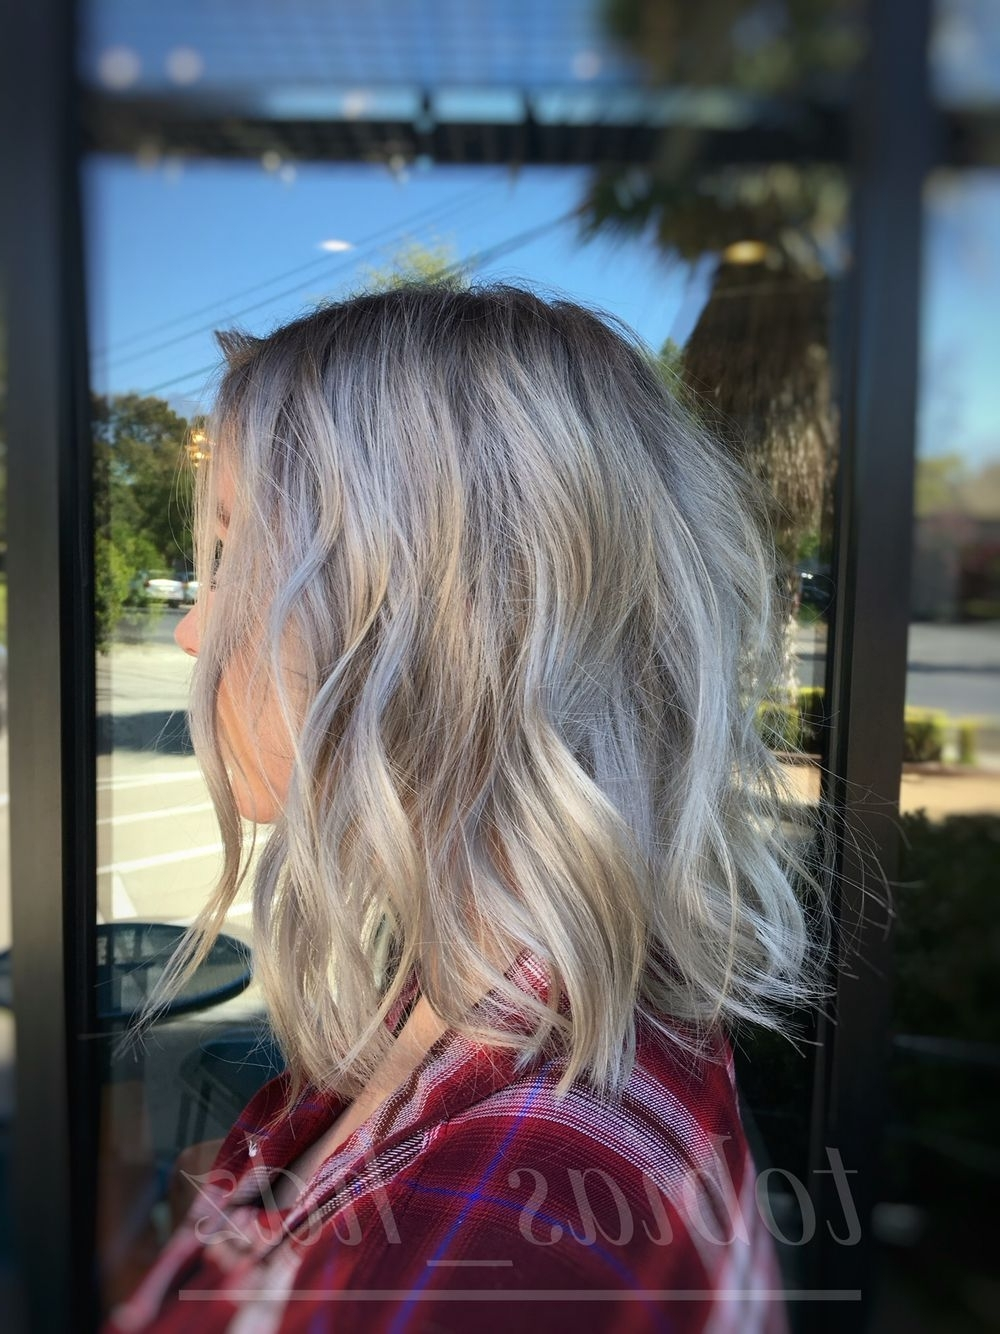 Widely Used Silver Blonde Straight Hairstyles In Ash Blonde, Dark Roots, Silver Hair, Dimension, Bob, Lob, Texture (View 2 of 20)